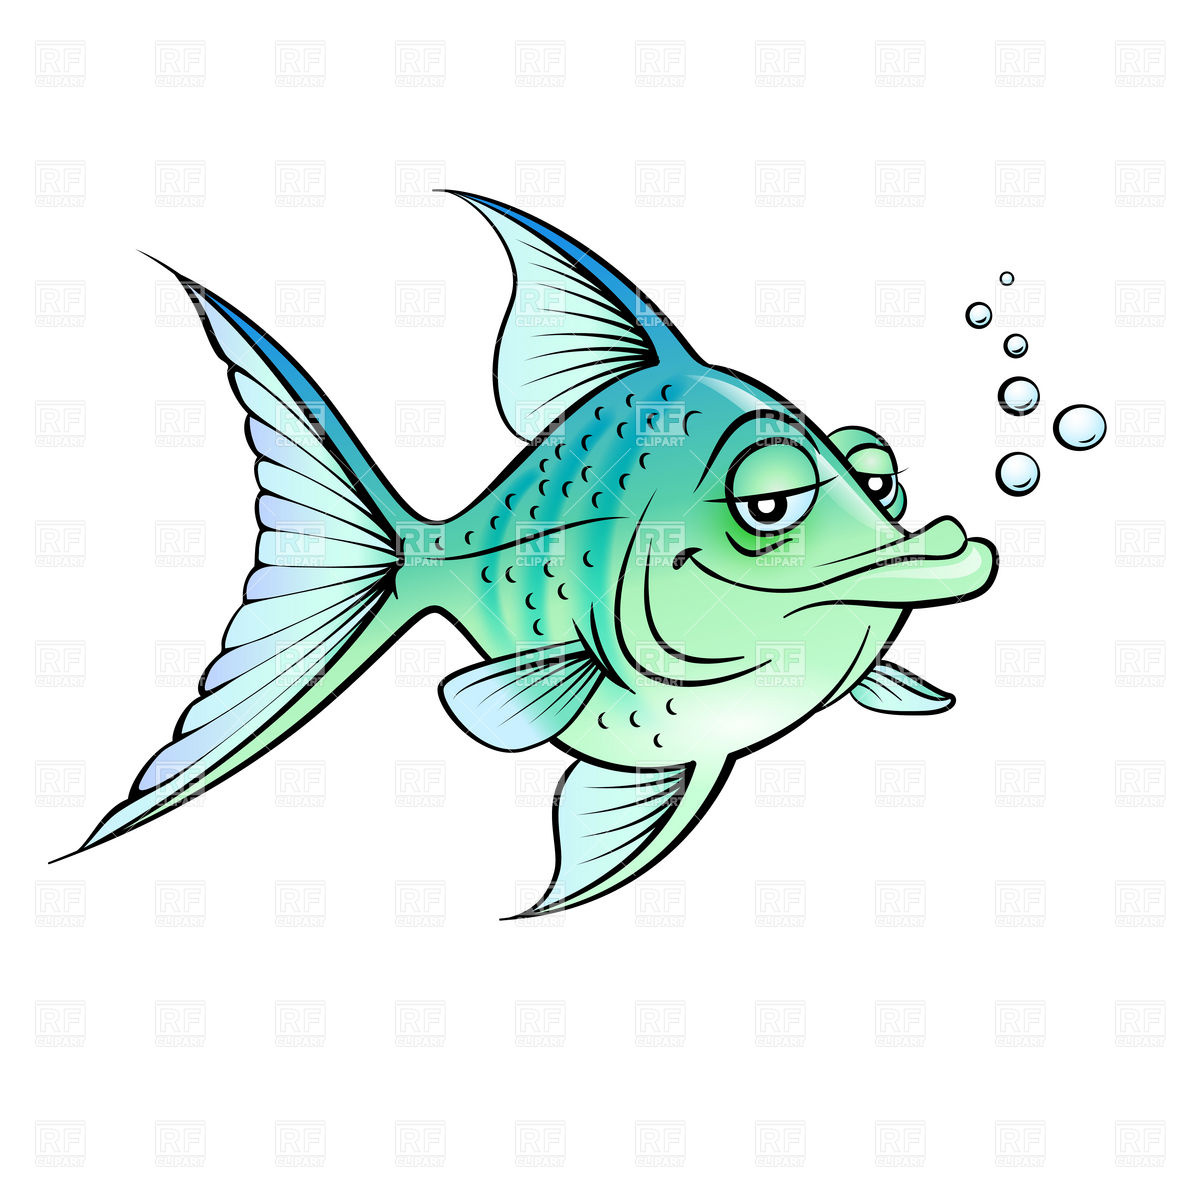 Green Cartoon Fish Download Royalty Free Vector Clipart  Eps